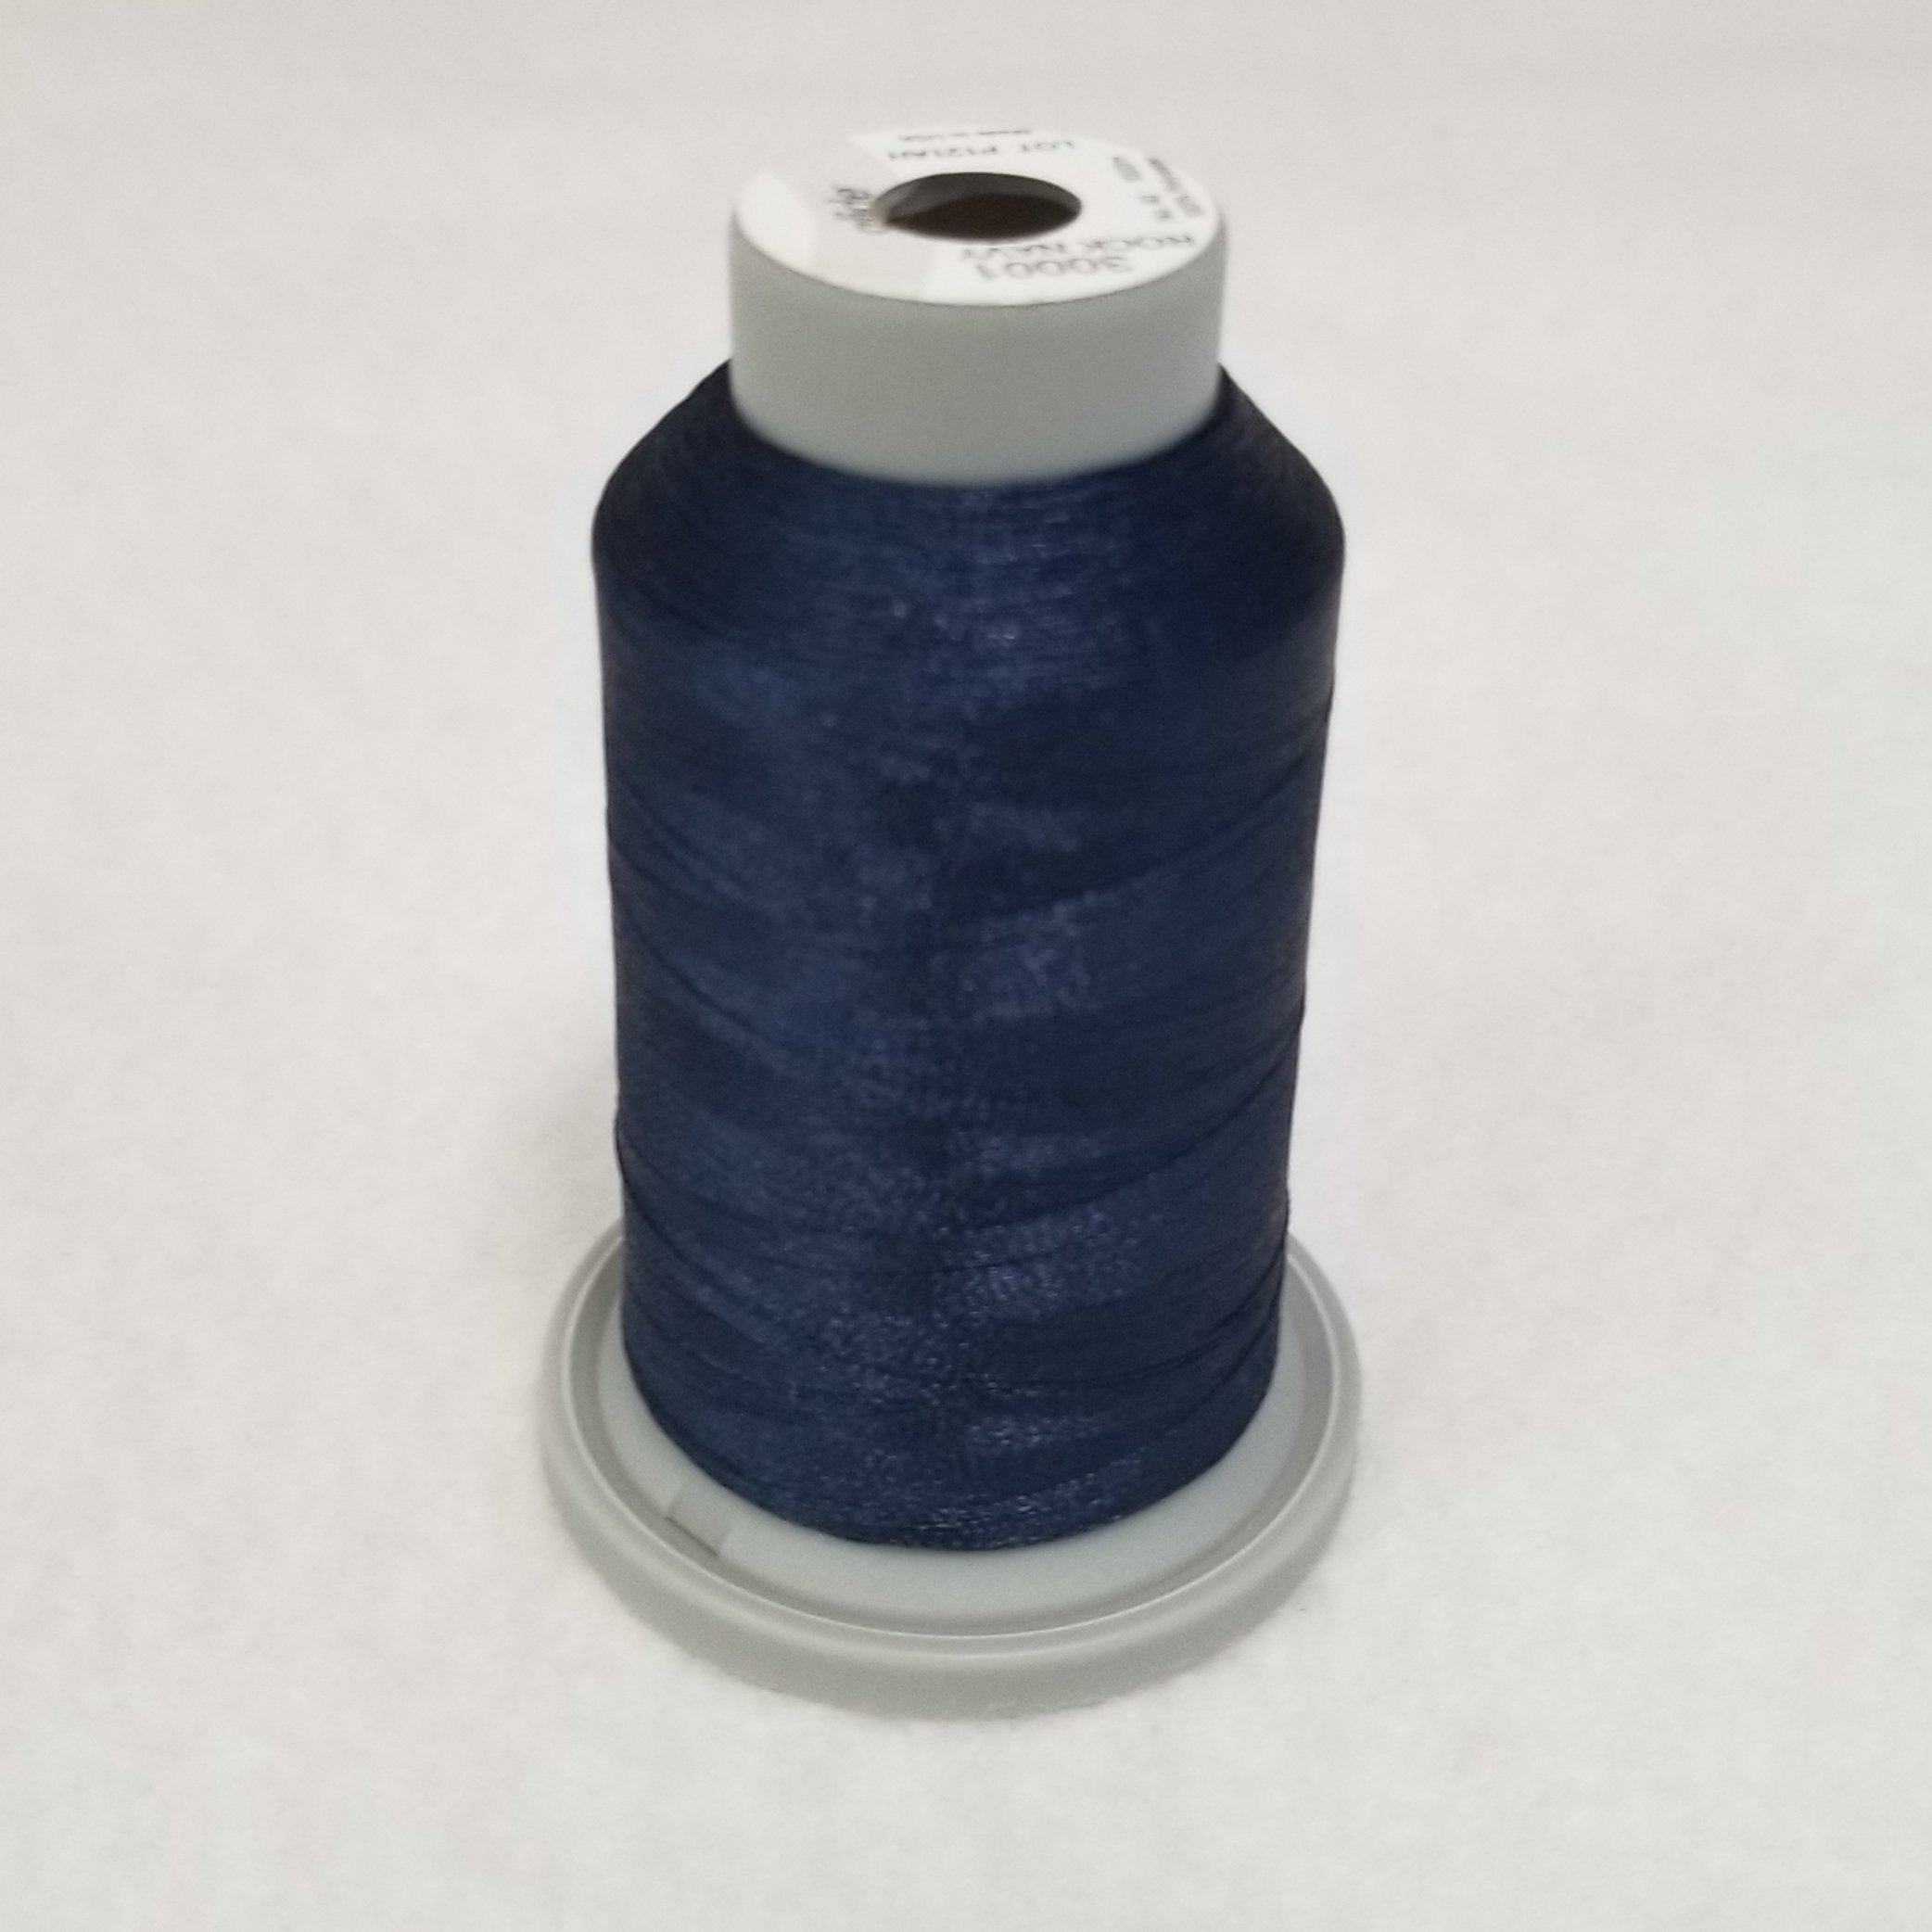 Rock Navy Blue Glide Thread Spool